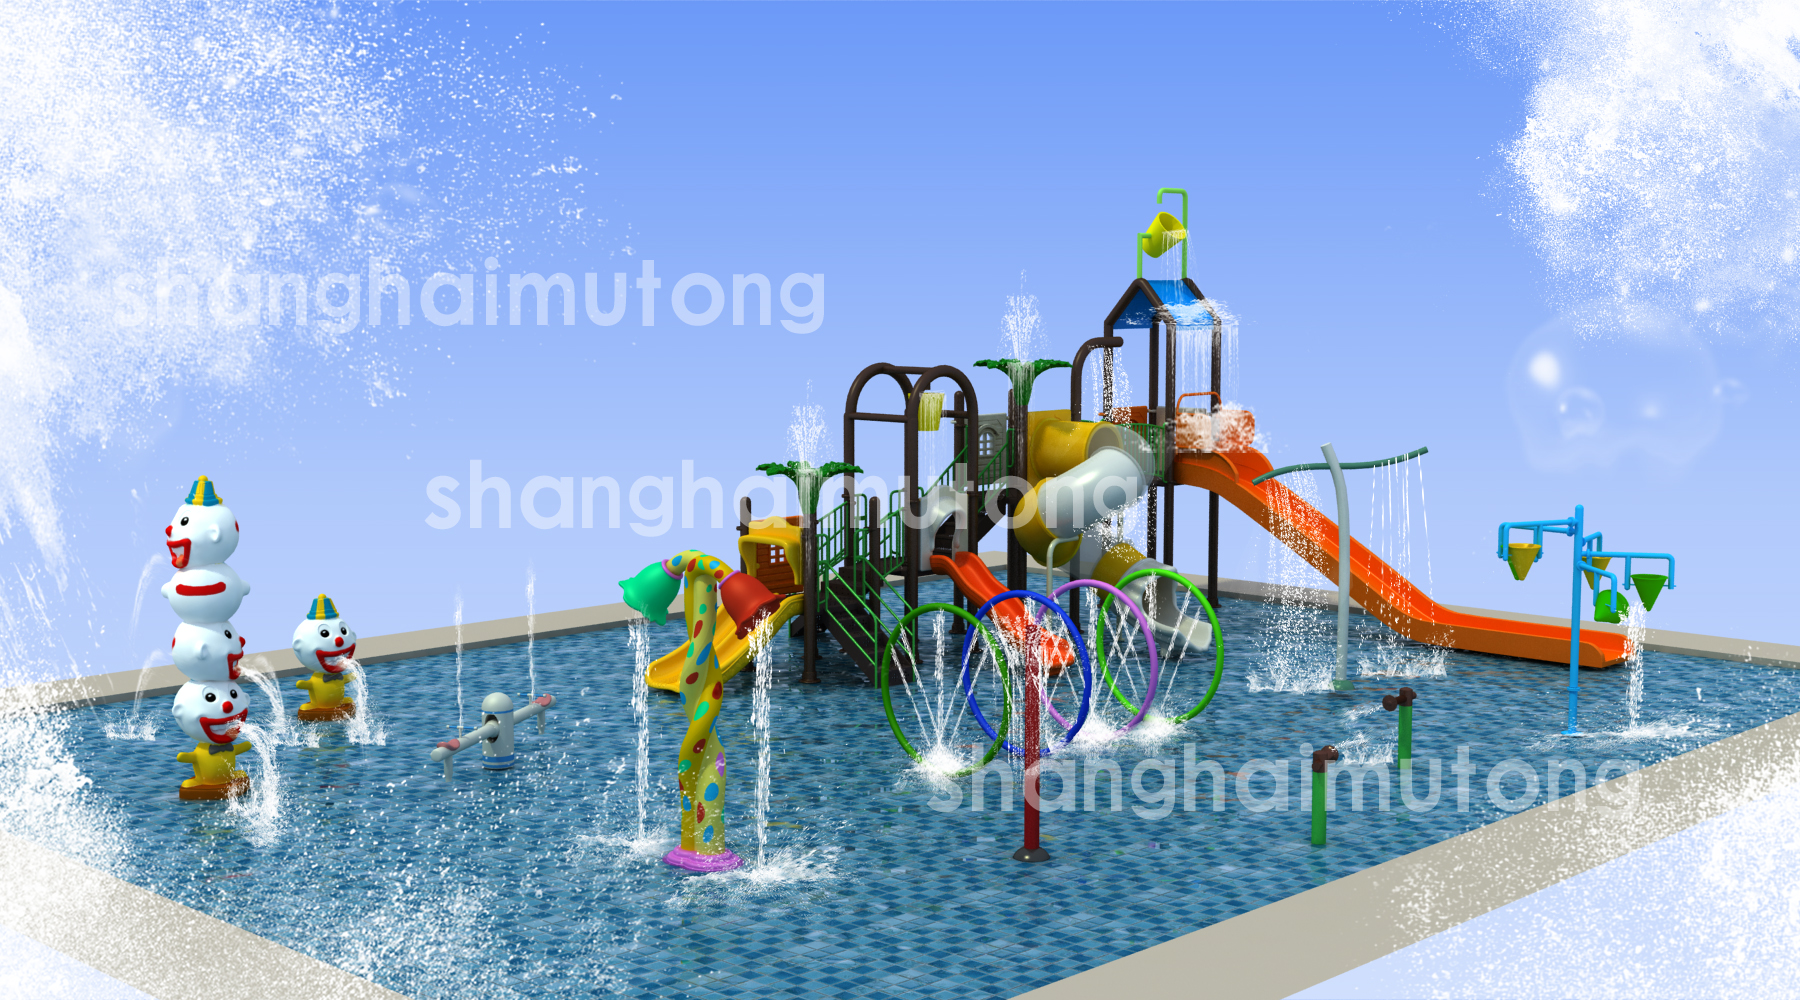 We design, engineer, manufacture and install the key attractions to any water park, specializing in water slides and Aquatic Play Units.